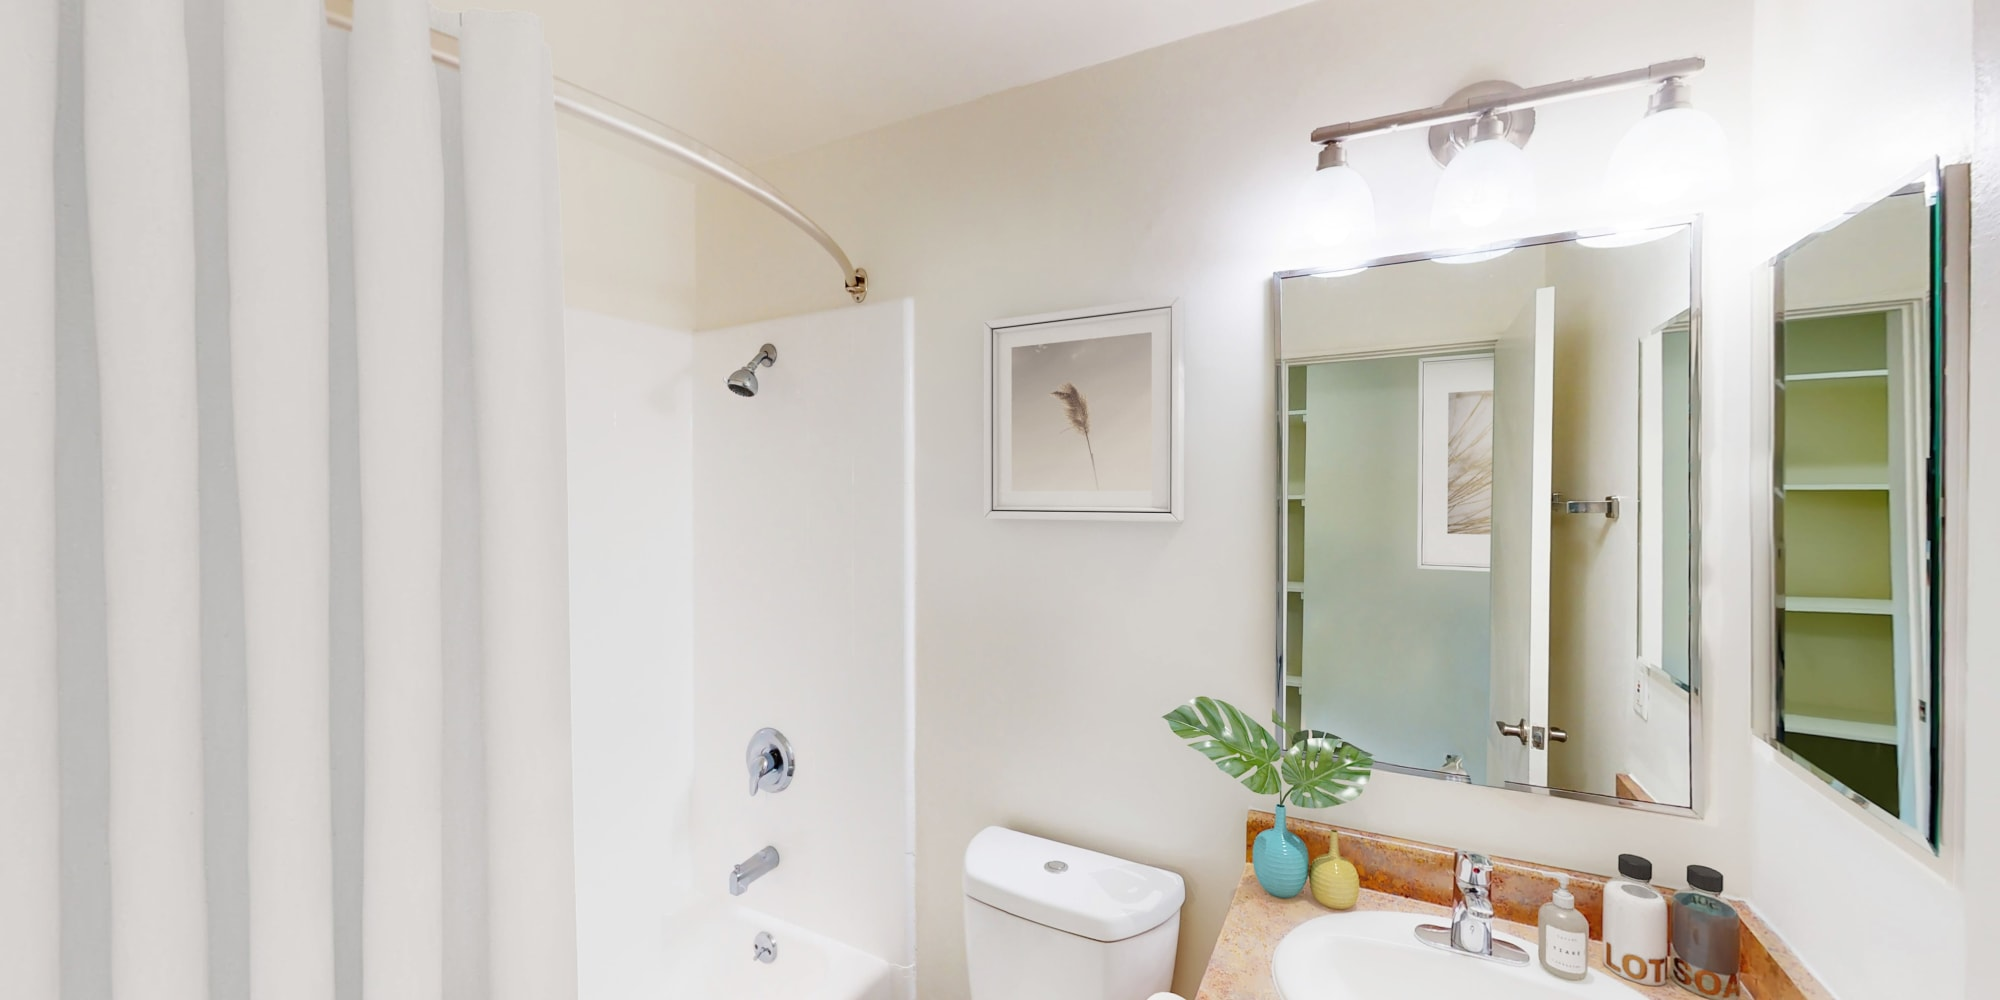 View of bathroom of a model efficiency home at West Park Village in Los Angeles, California